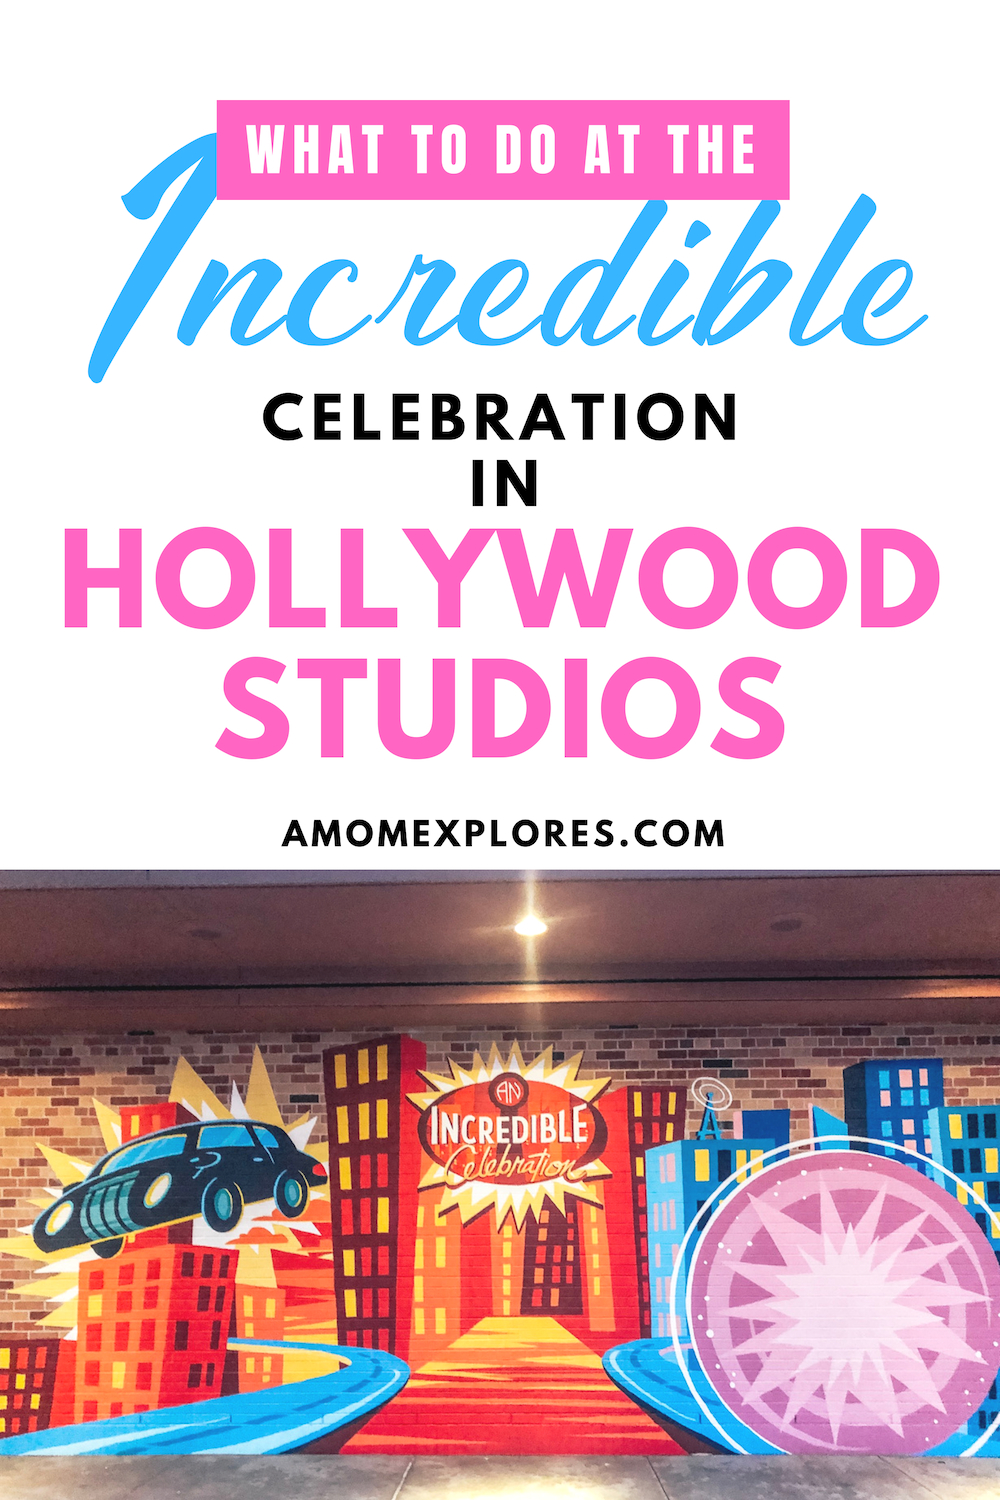 Have you visited the Incredibles Celebration at Hollywood Studios? It's the perfect spot to celebrate with the Incredibles and participate in the Super Shindig at Pixar Place near Toy Story Land. Find out where to fi-2.jpg